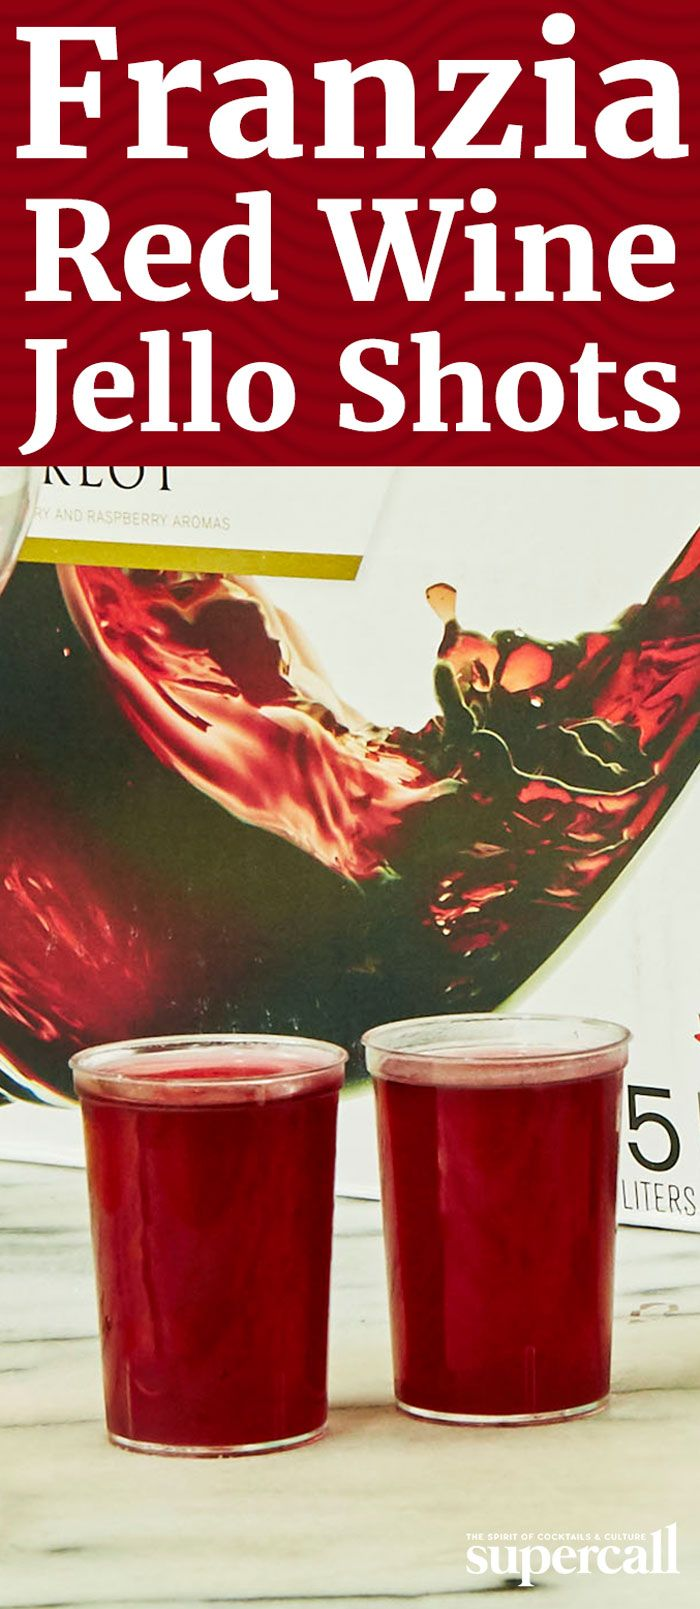 Boxed Red Wine Jello Shots Recipe Wine Jello Shots Jello Shots Jello